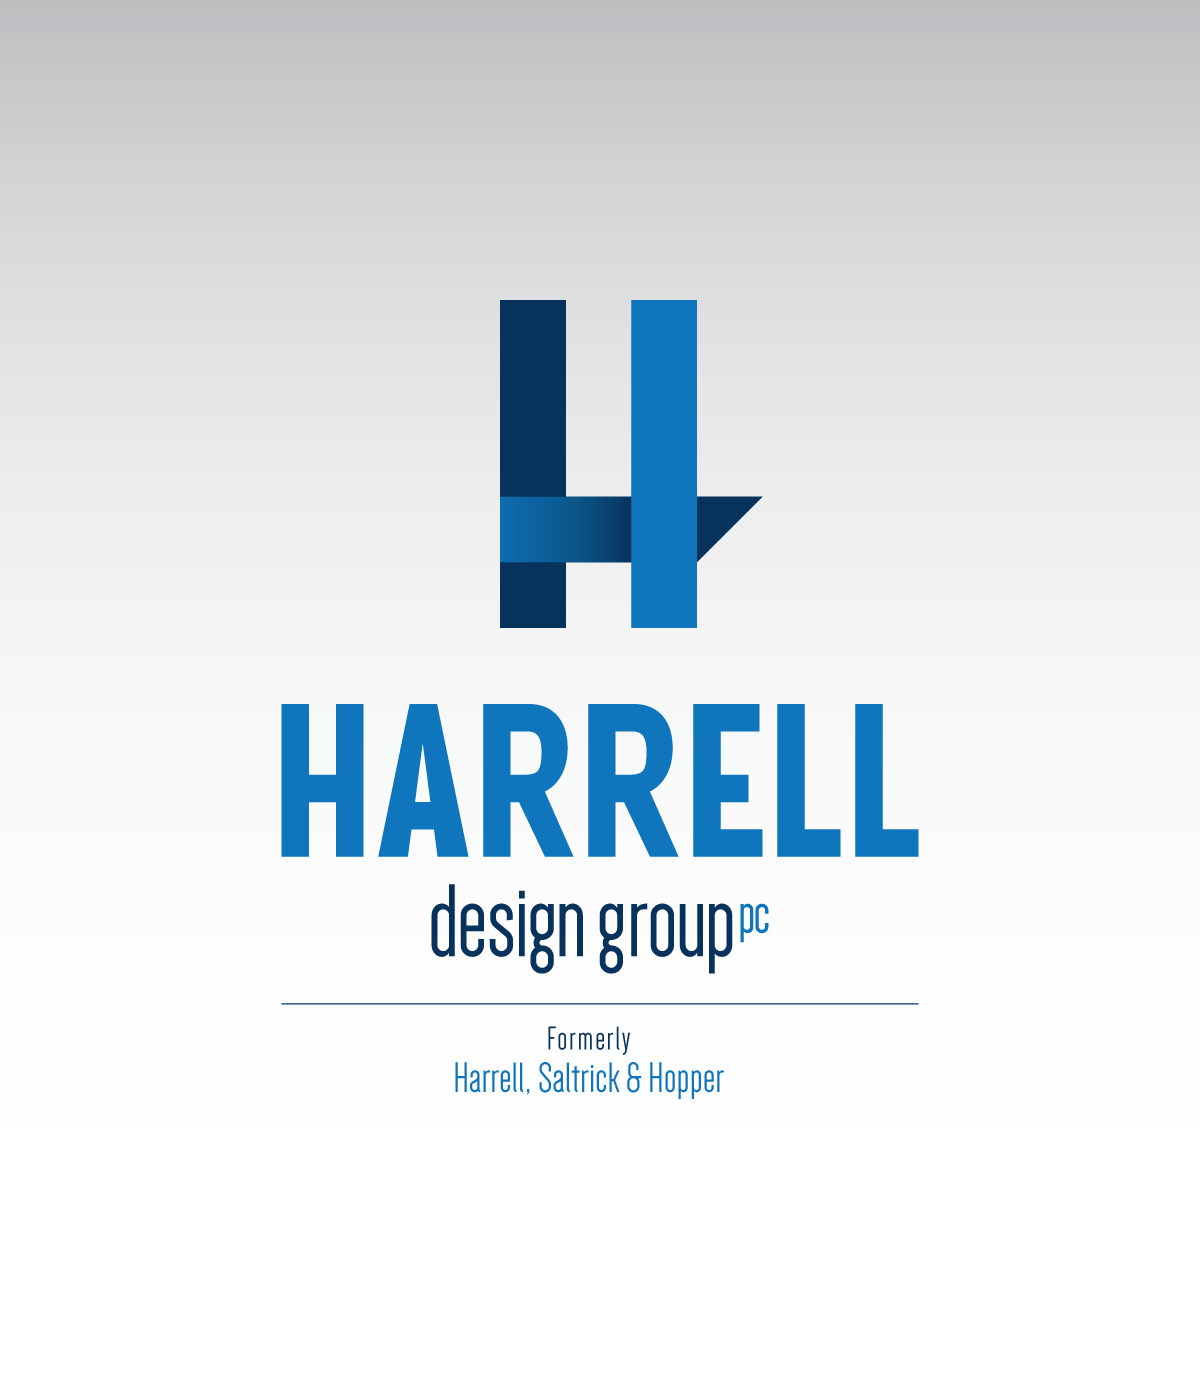 Harrell Design Group Logo on White